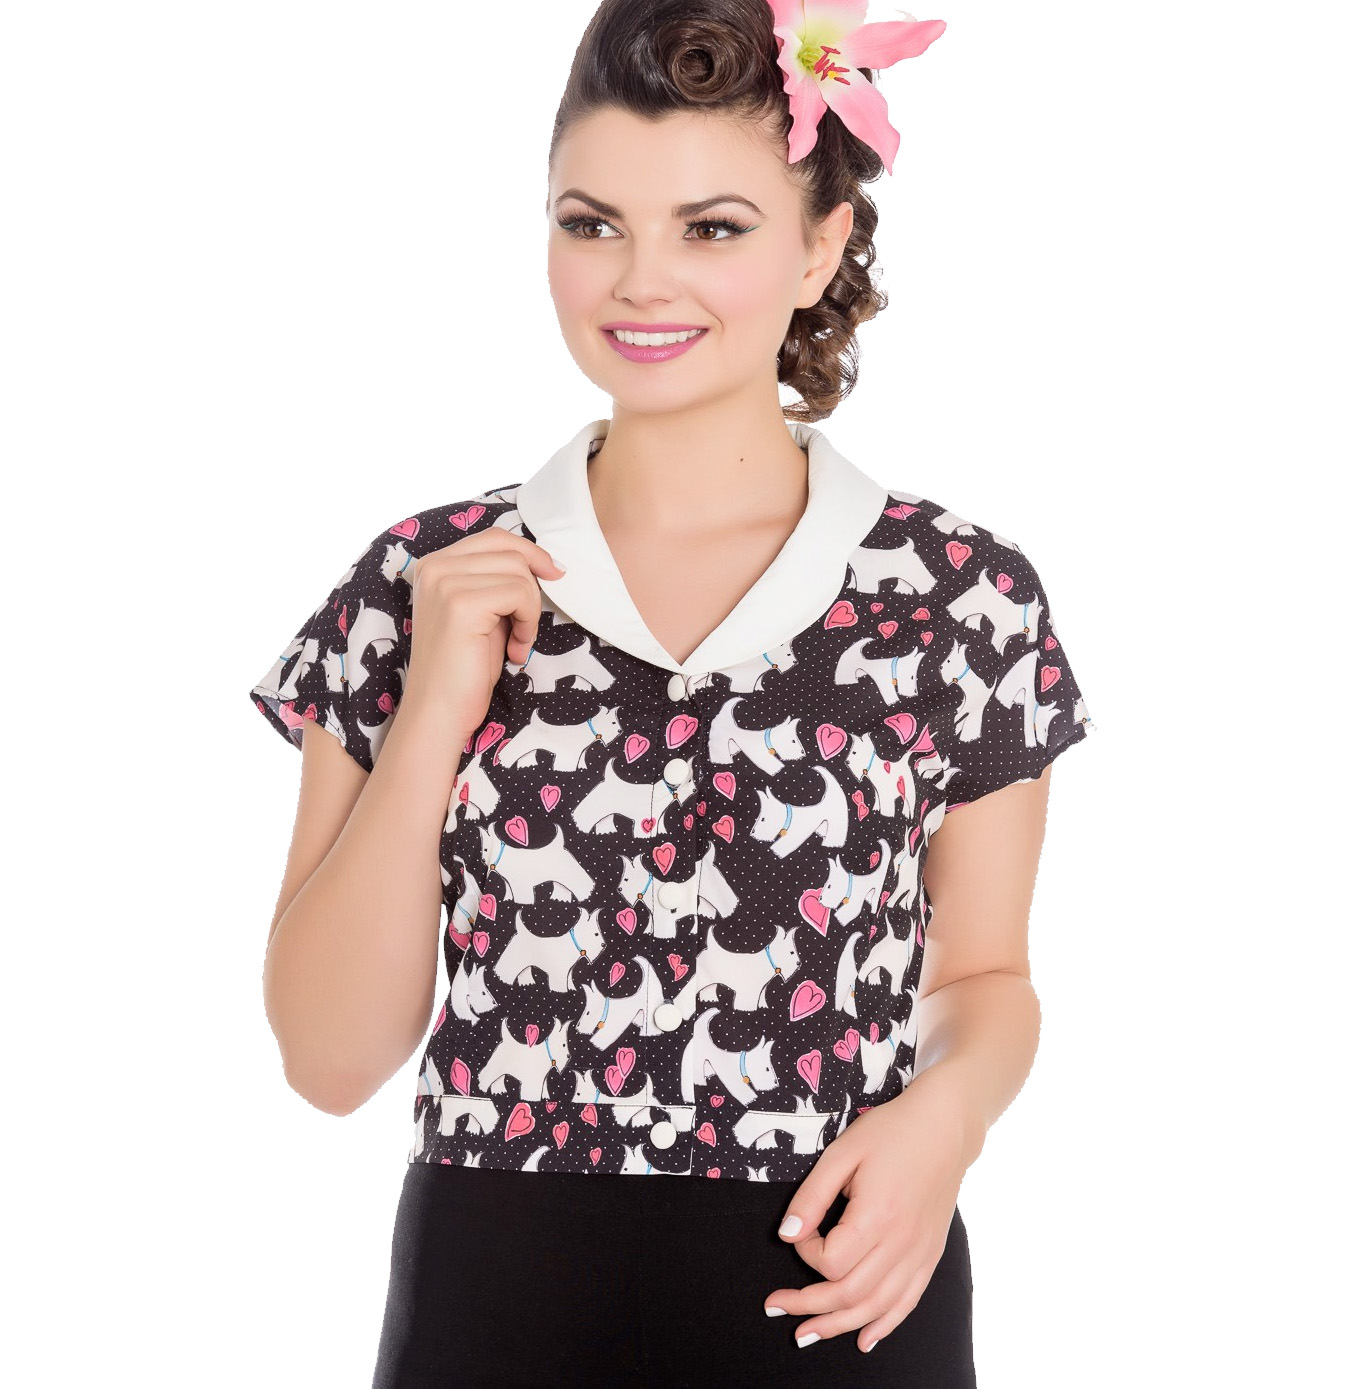 Hell-Bunny-50s-Retro-Top-Scottie-Dog-Heart-AGGY-Cropped-Blouse-Shirt-All-Sizes thumbnail 19